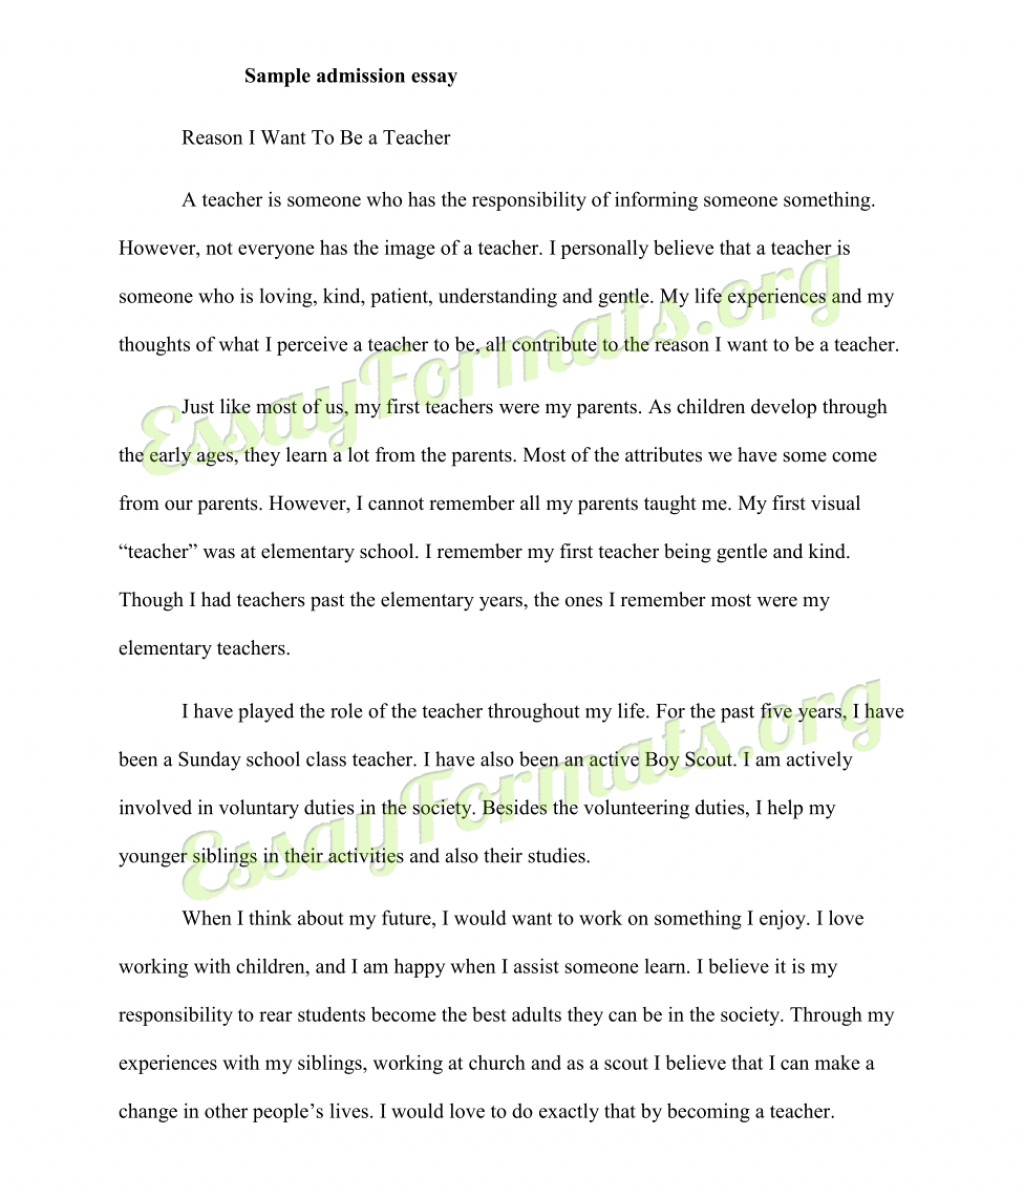 004 How To Format College Essay Stupendous A Should I My Application Write Mla Common App Large